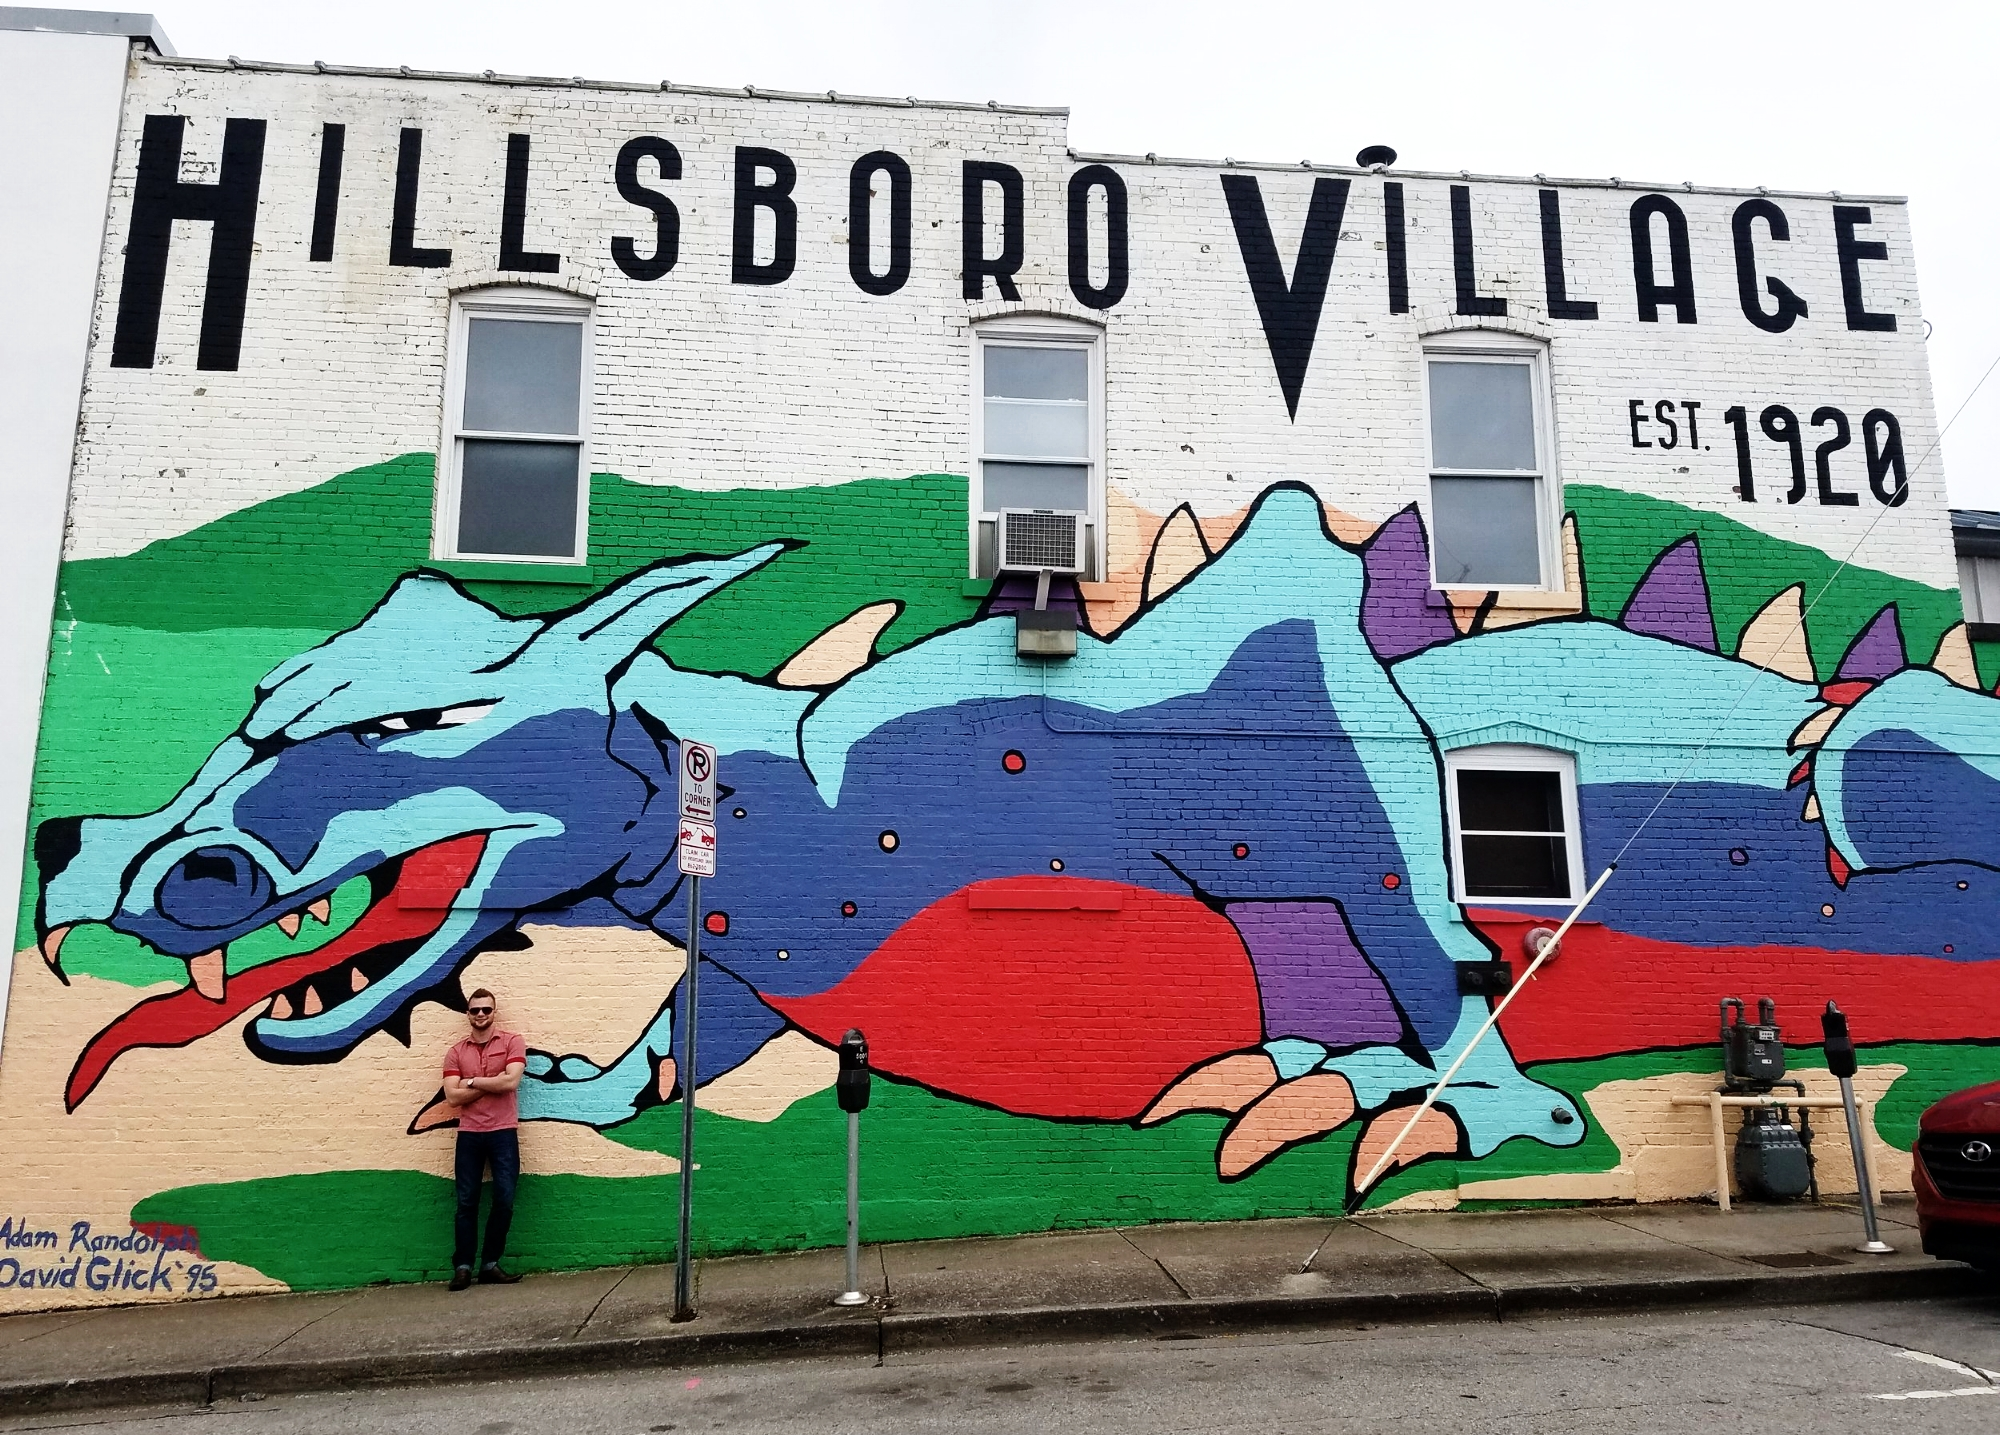 The residents of Hillsboro Village have been terrorized by this colorful dragon since 1995